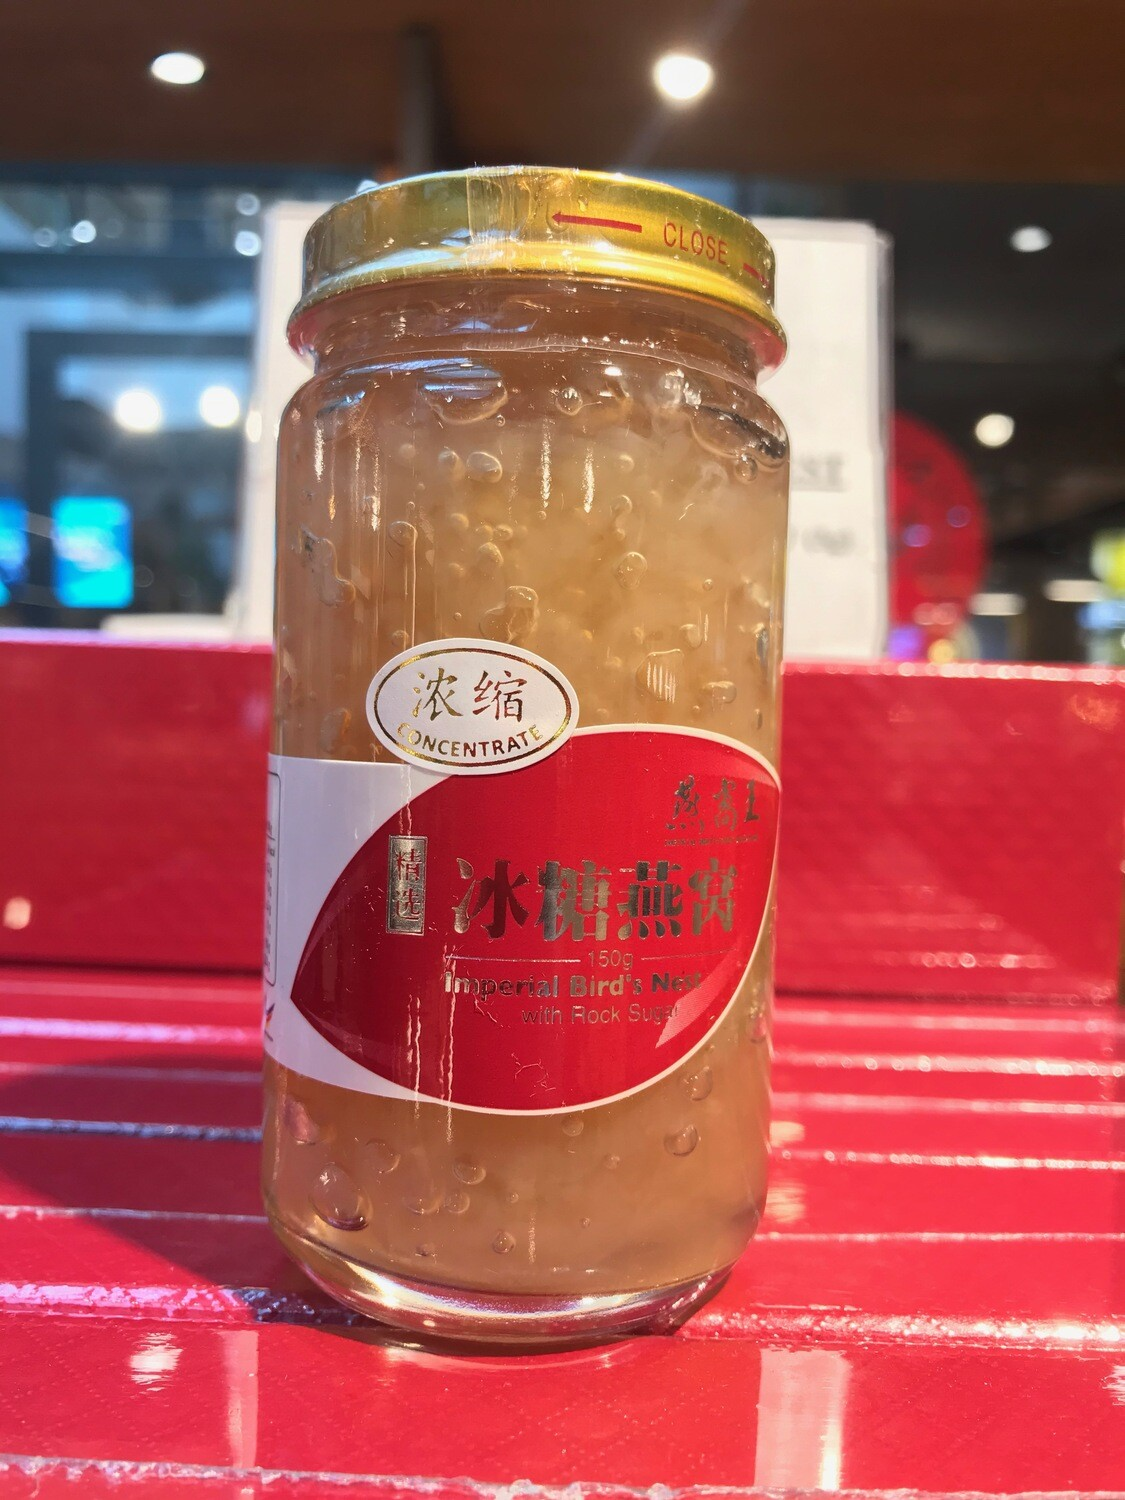 Concentrated Imperial Bird's Nest With Rock Sugar